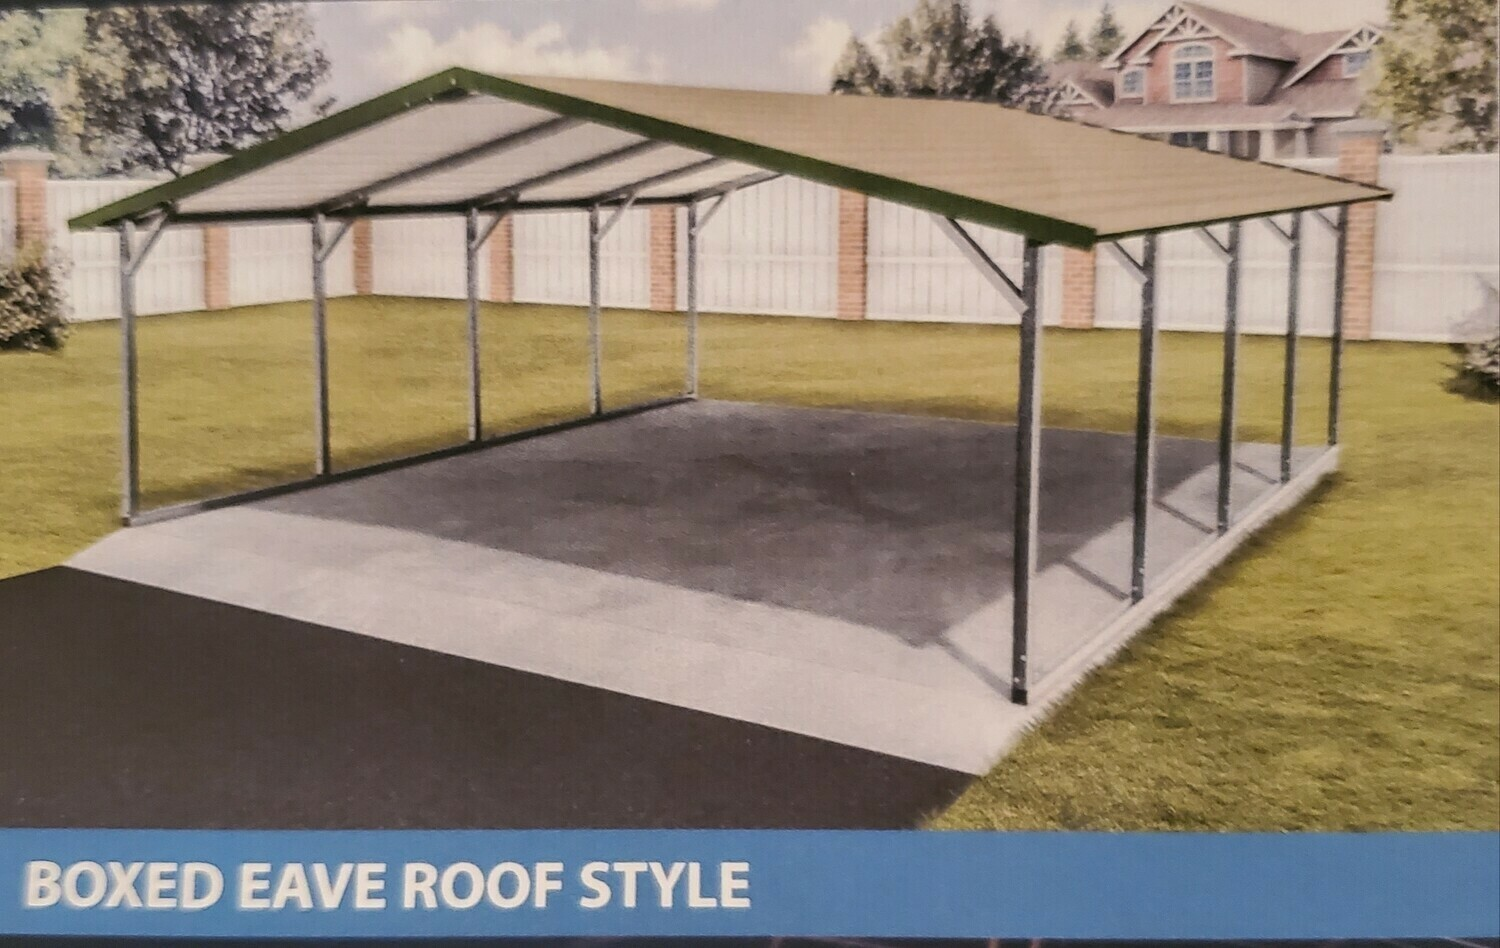 Boxed Eave Style Metal Carport by Eagle Carports